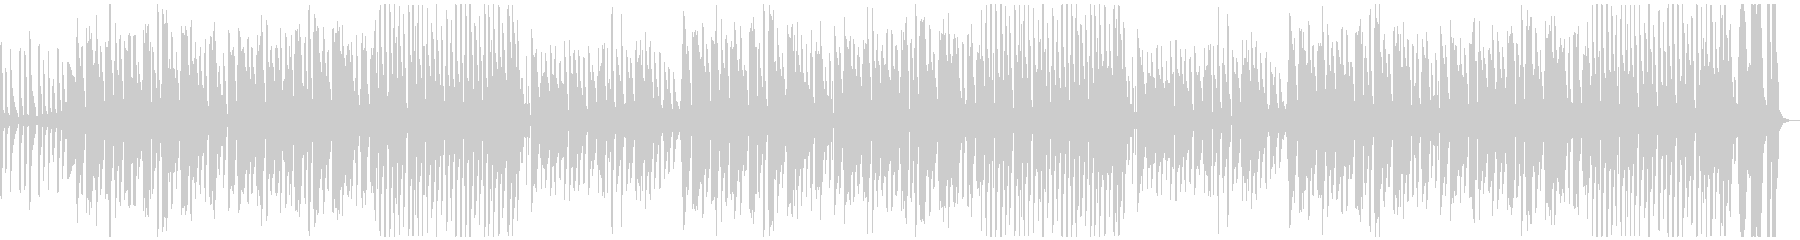 Music with the image of a Christmas market's unreproduced waveform